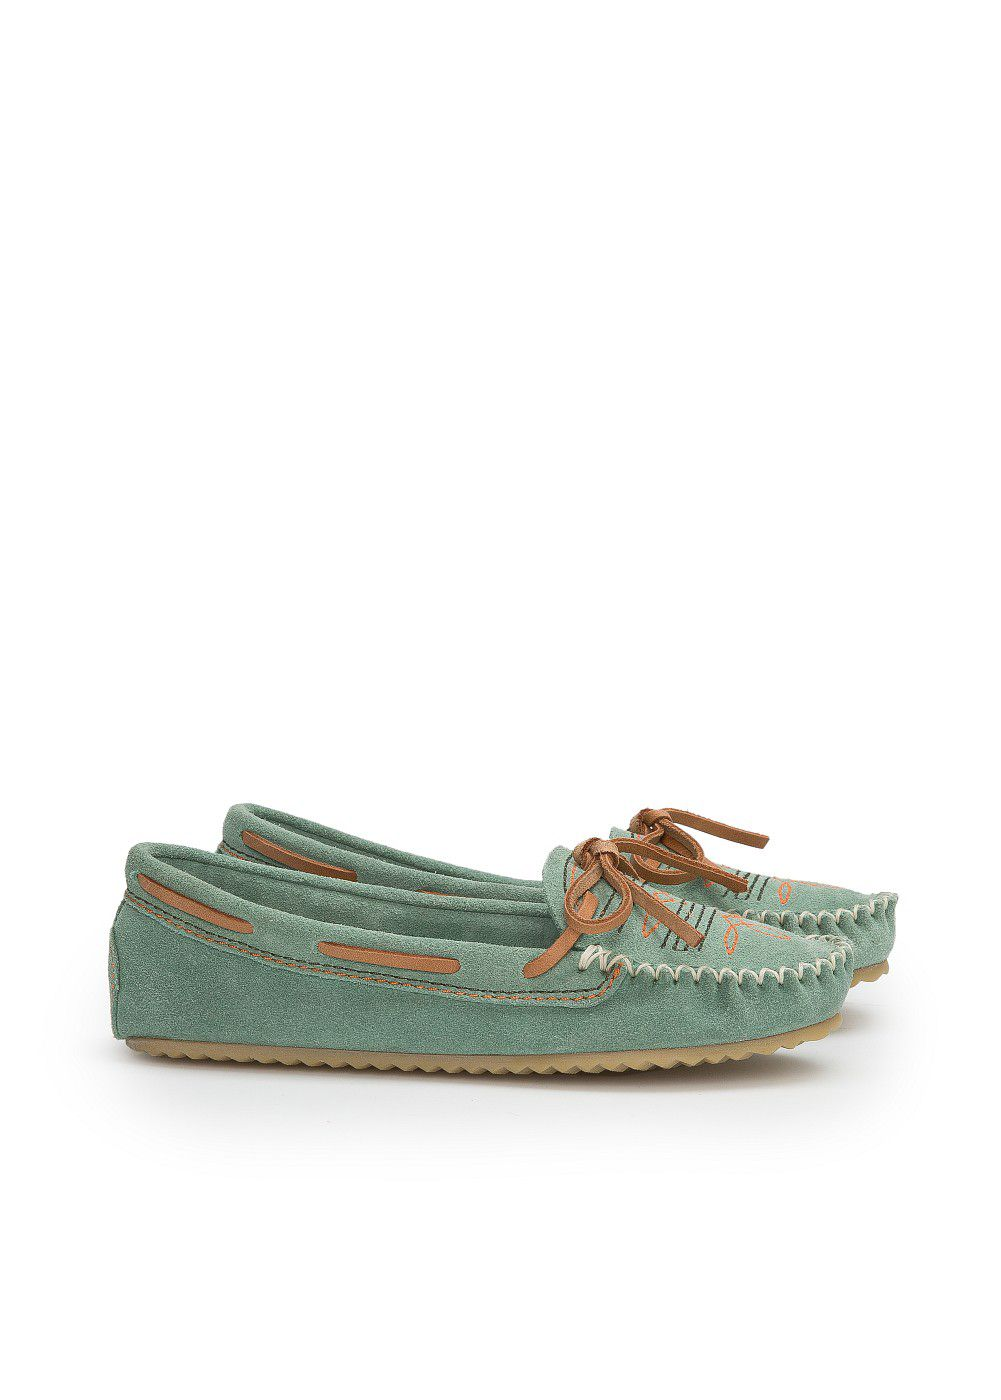 Girls embroidered suede moccasins